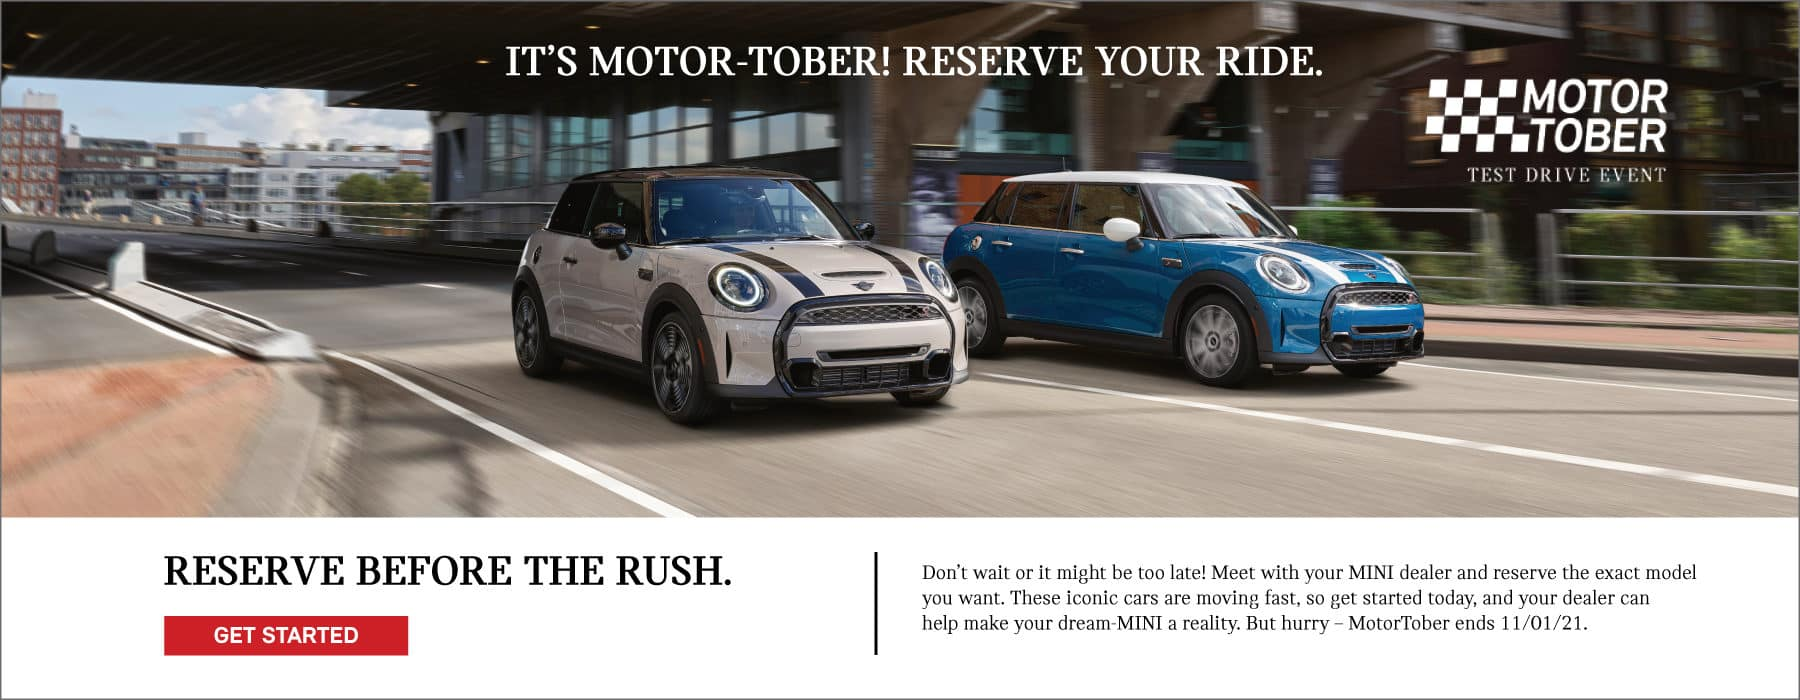 Its Motor Tober! Reserve your ride today! Get in before the rush!